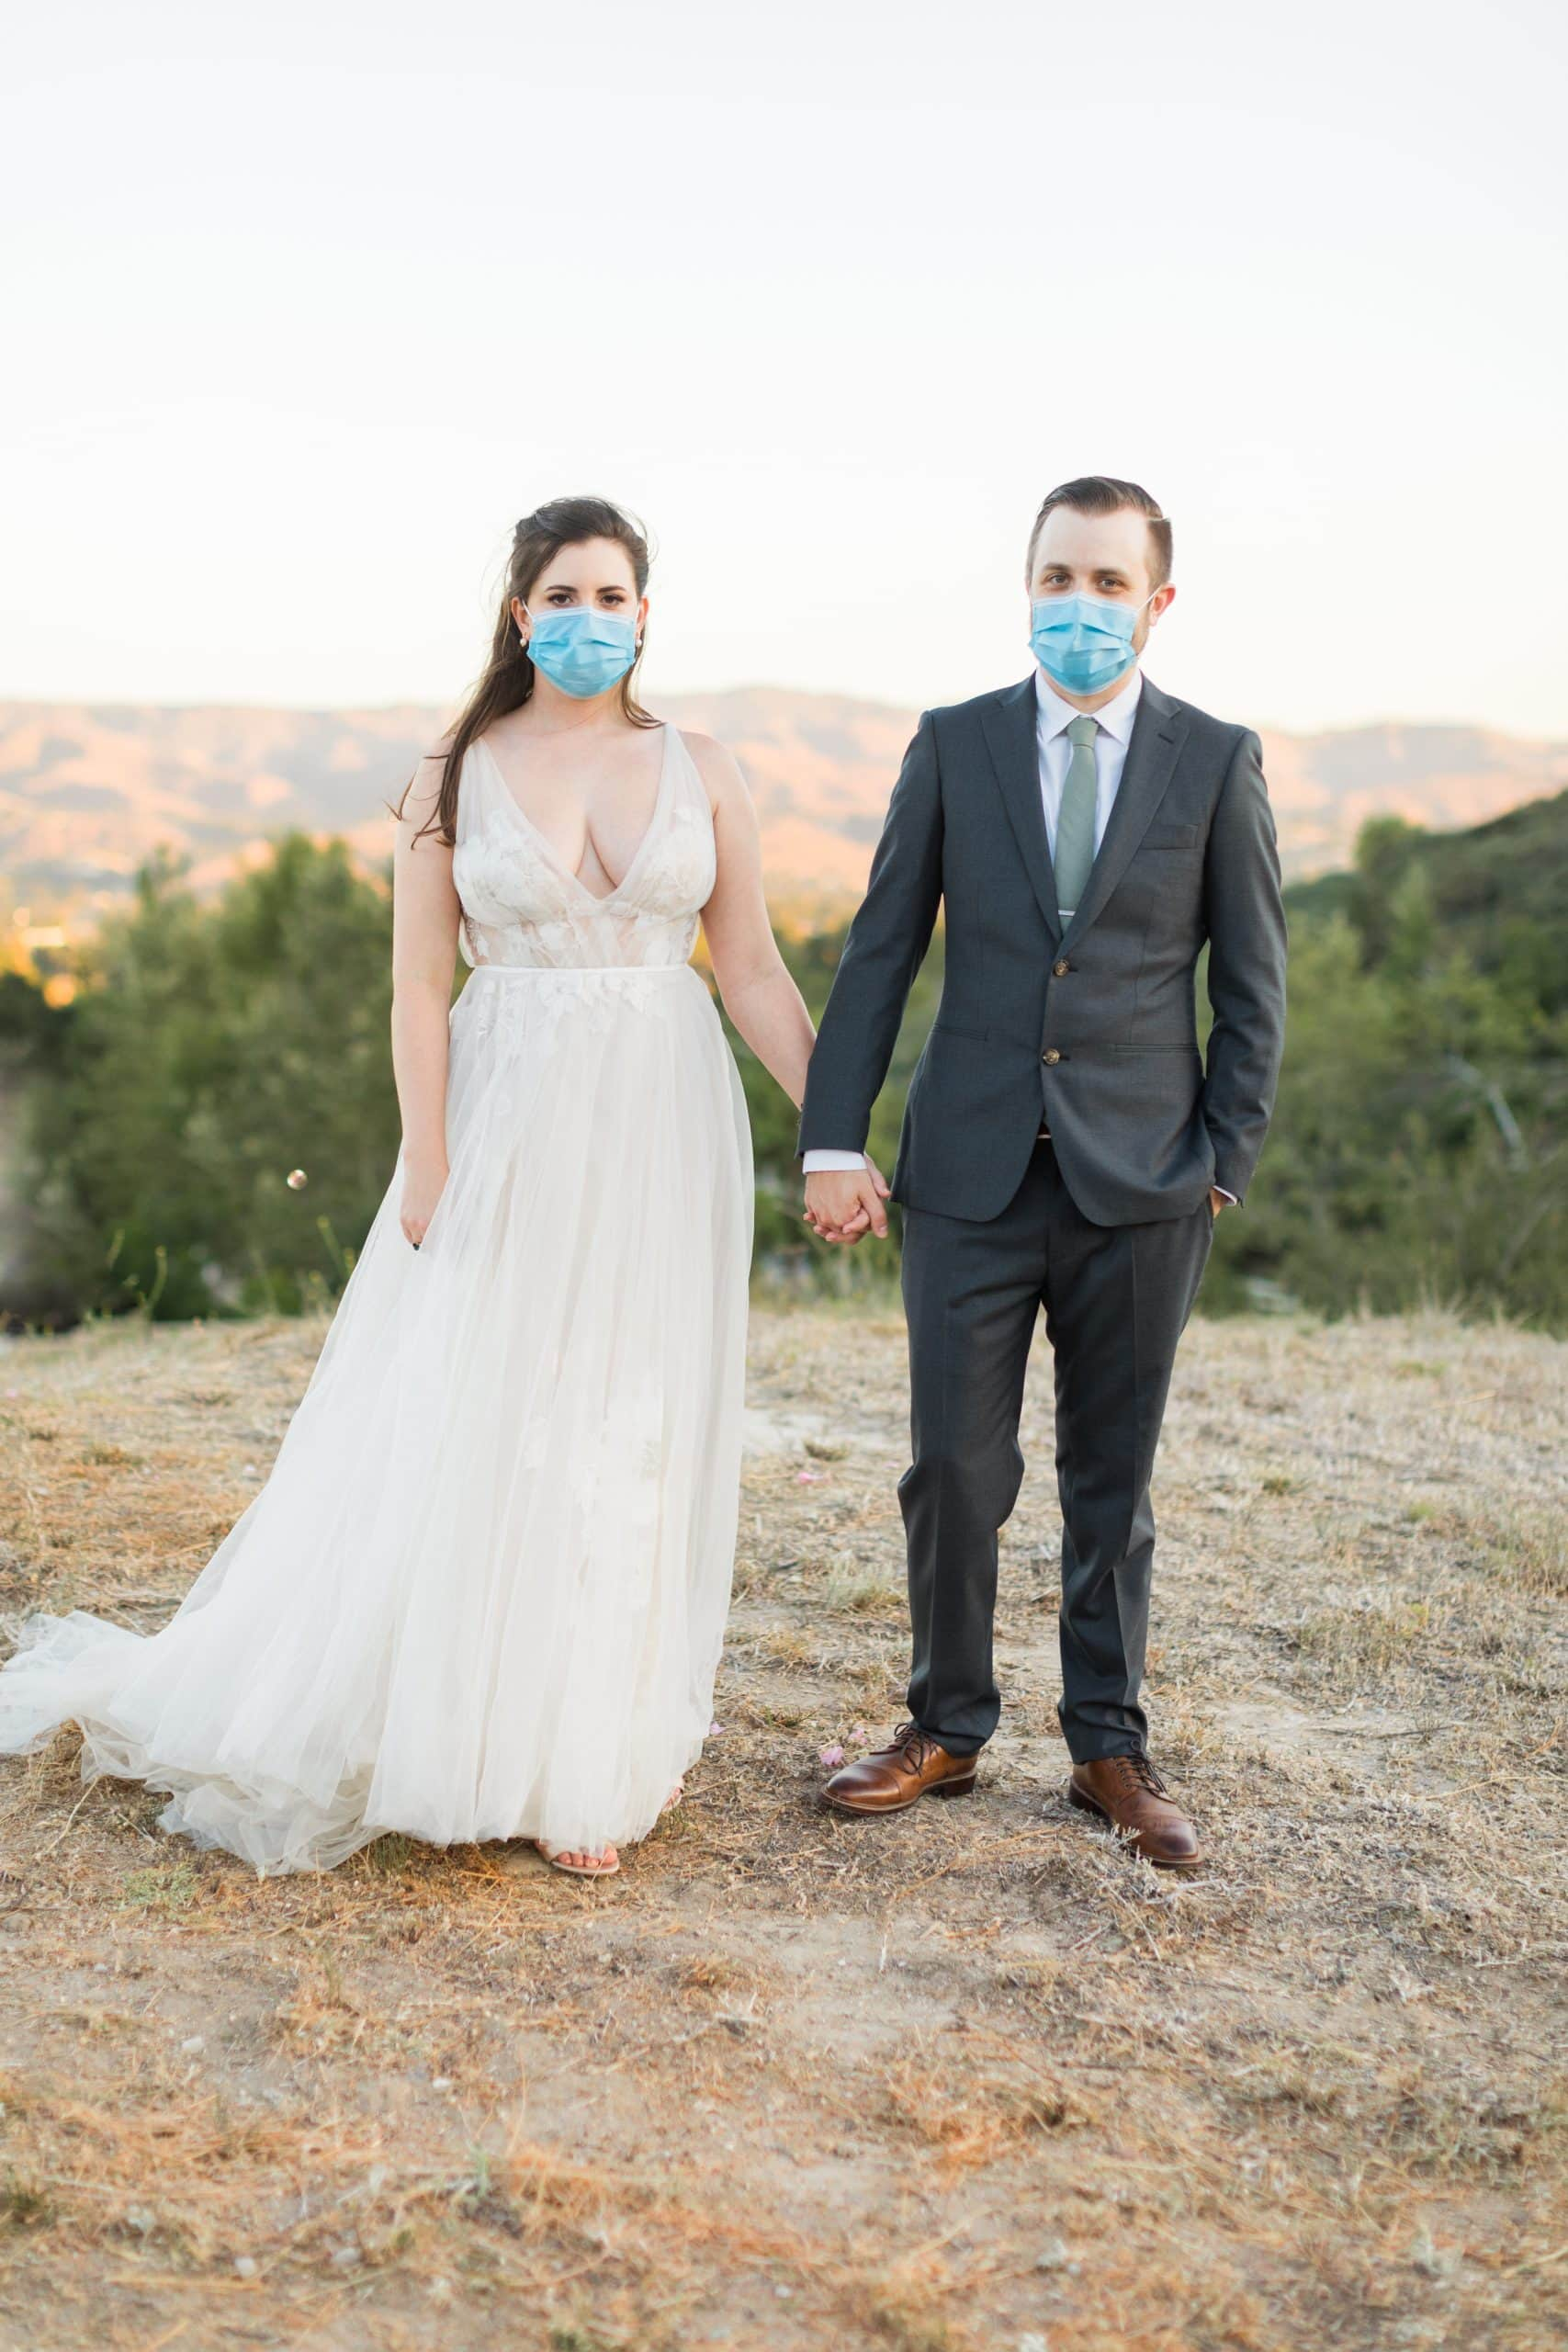 covid wedding bride and groom wearing masks